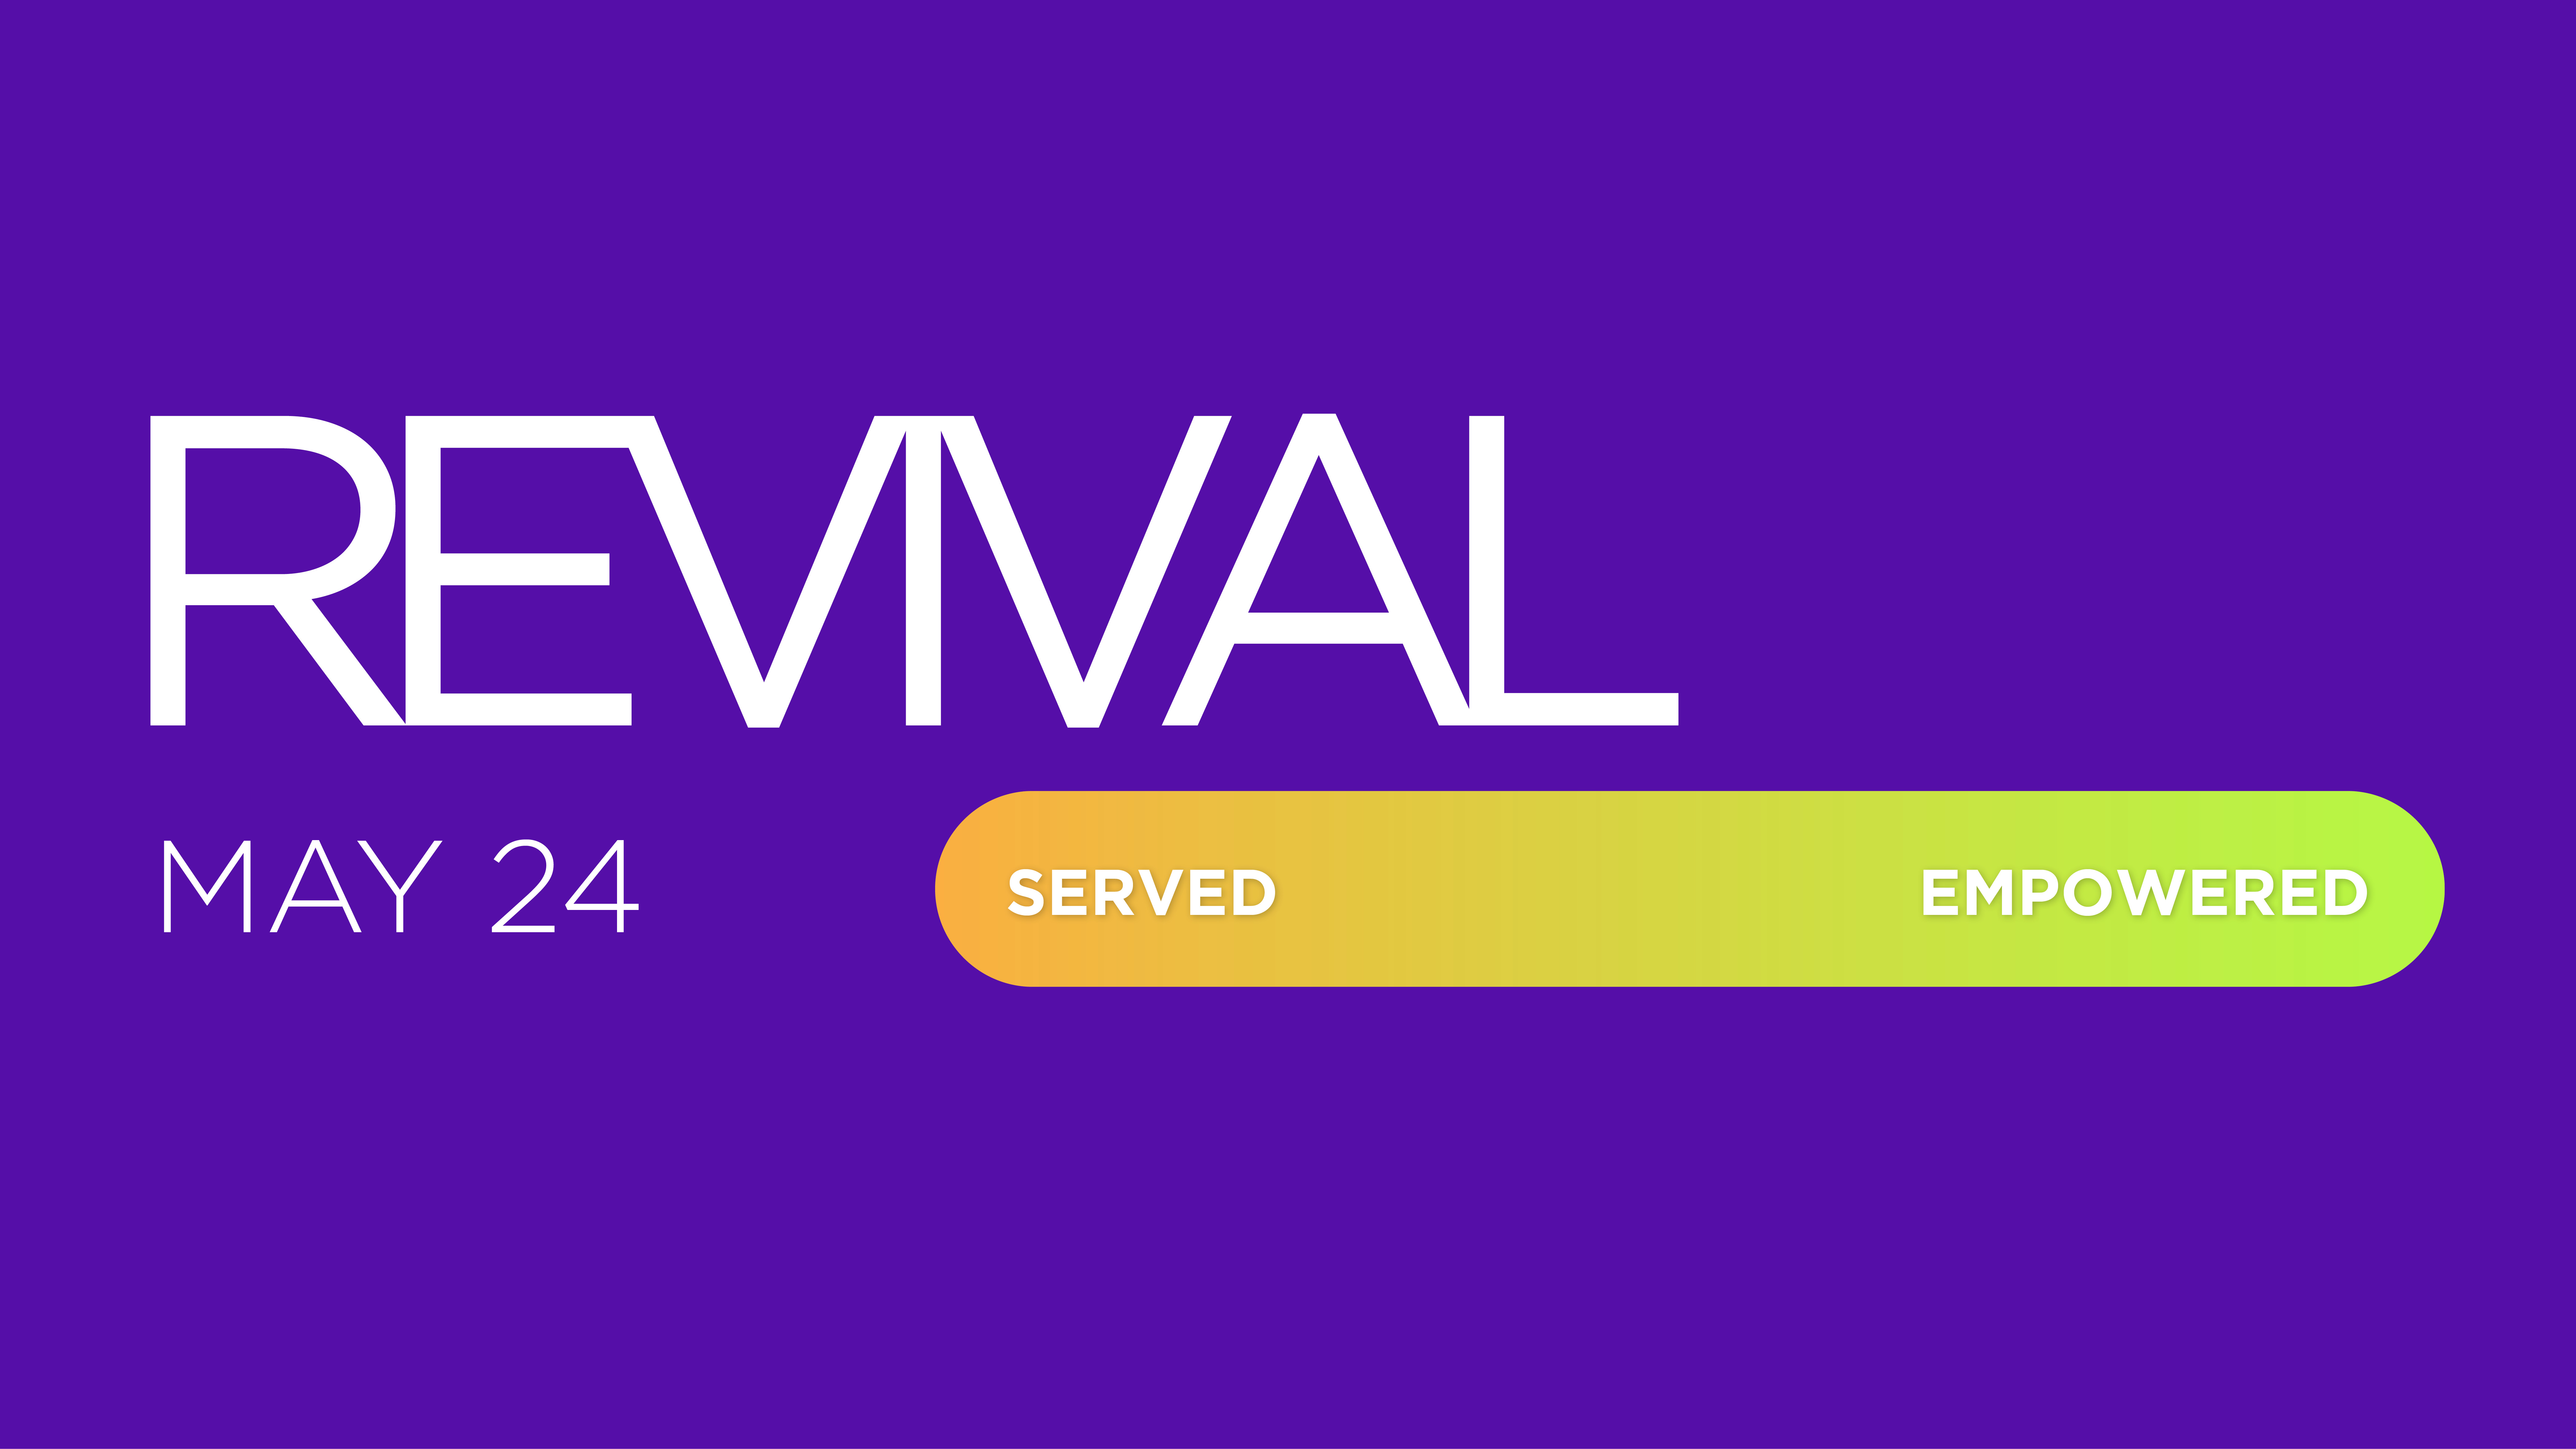 Revival | Five: Served to Empowered | Tim McConnell